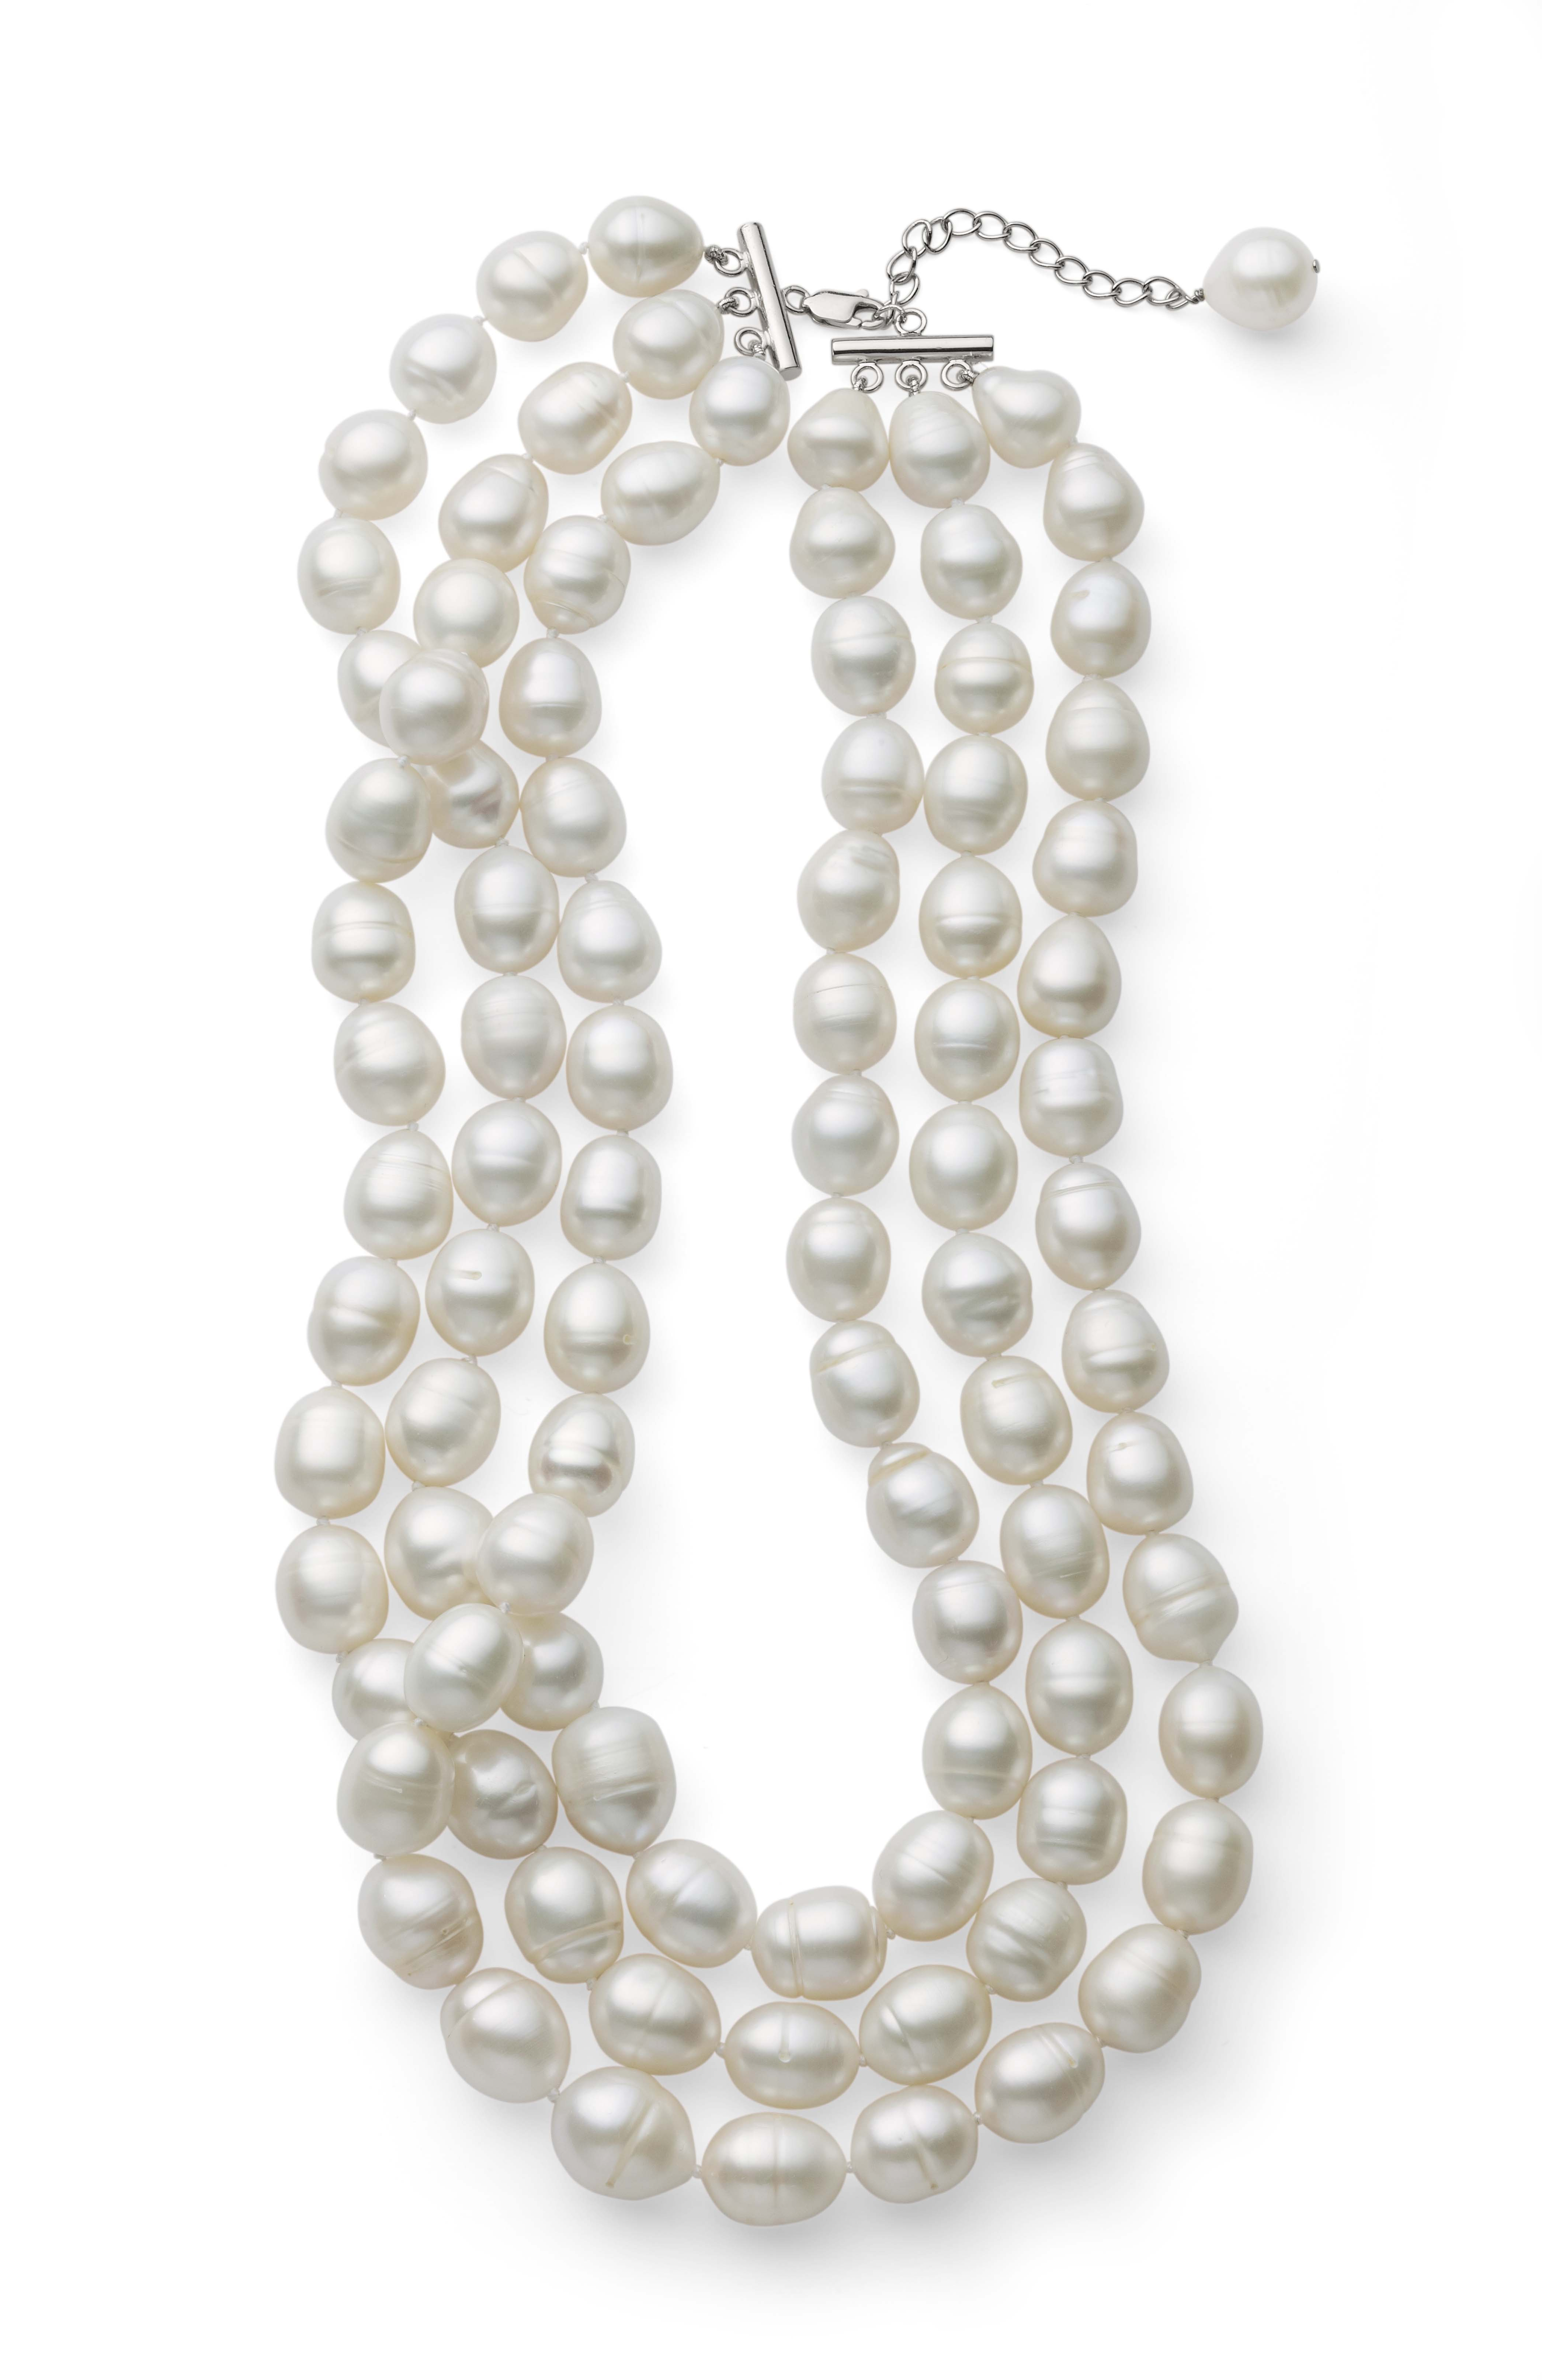 Freshwater Triple Strand Pearl Necklace